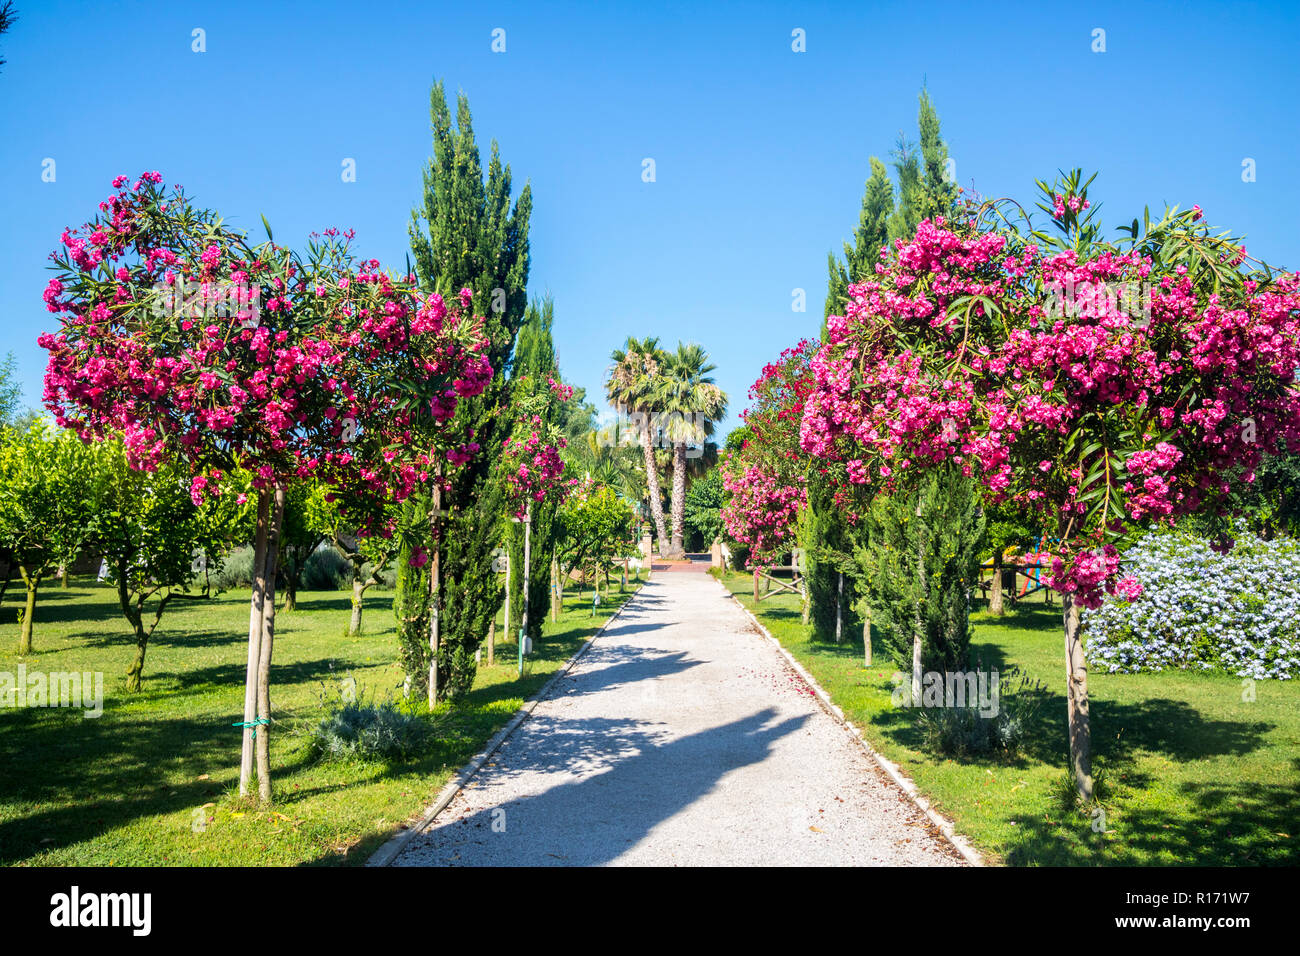 popular italian cerise pink tree, Nerium oleander pompeii italy, lush summer concept, bright colours of nature concept, vacation, trees plants, I Stock Photo